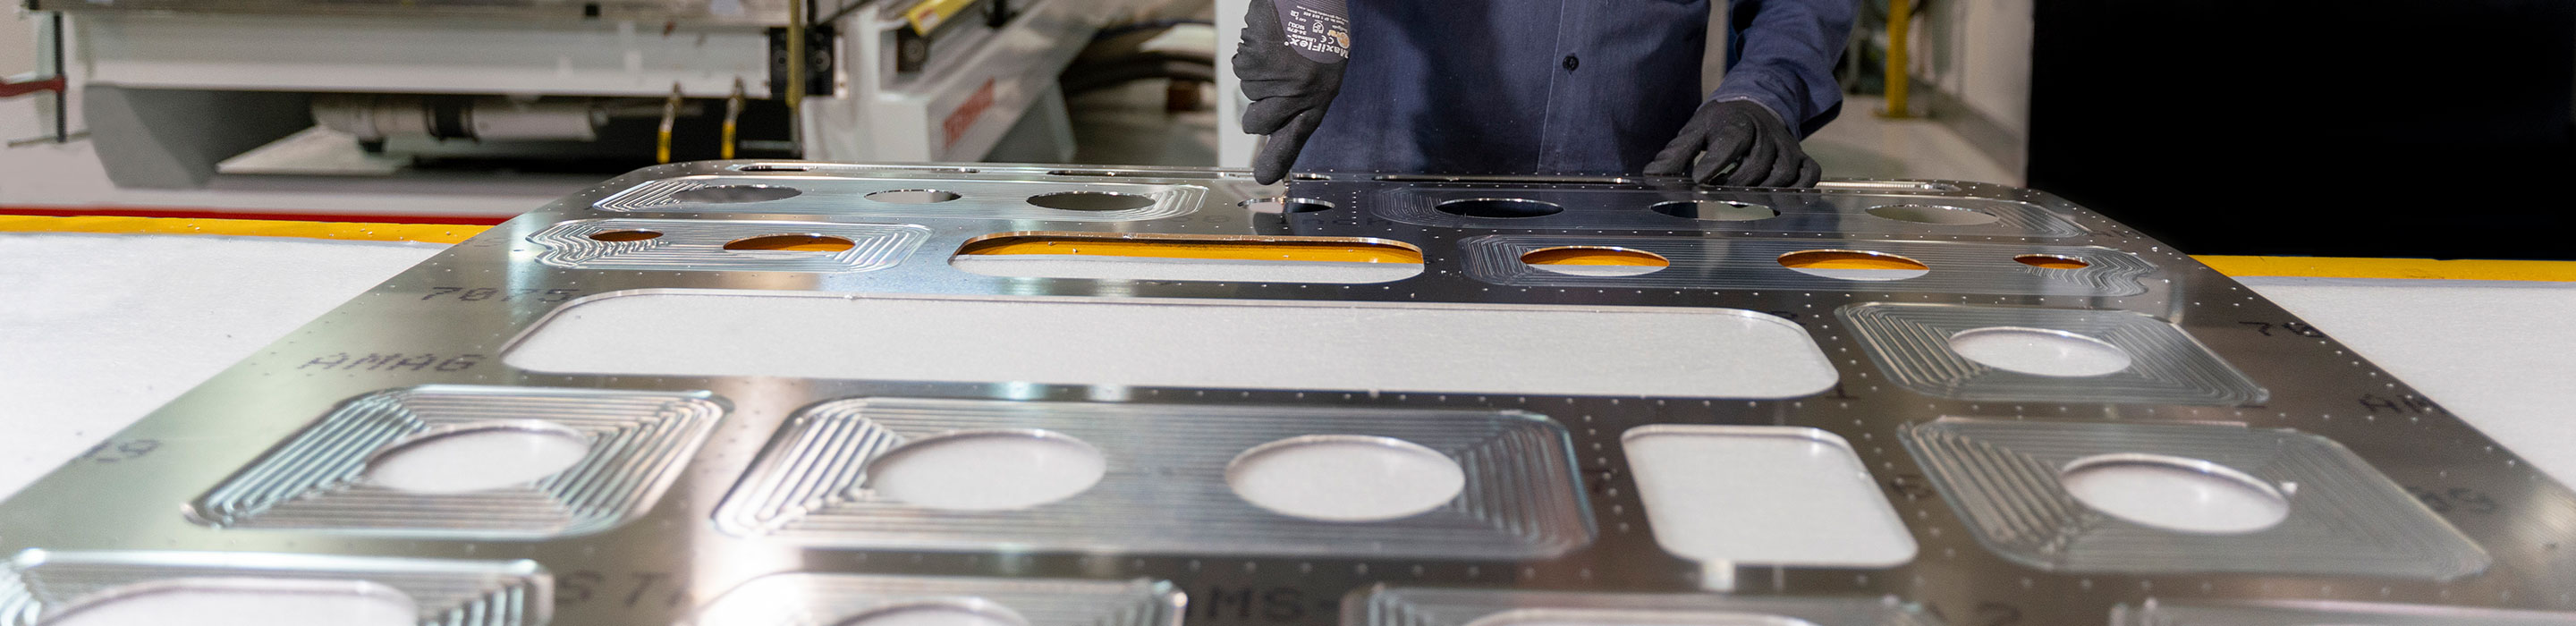 Person operating a mold for sheet metal